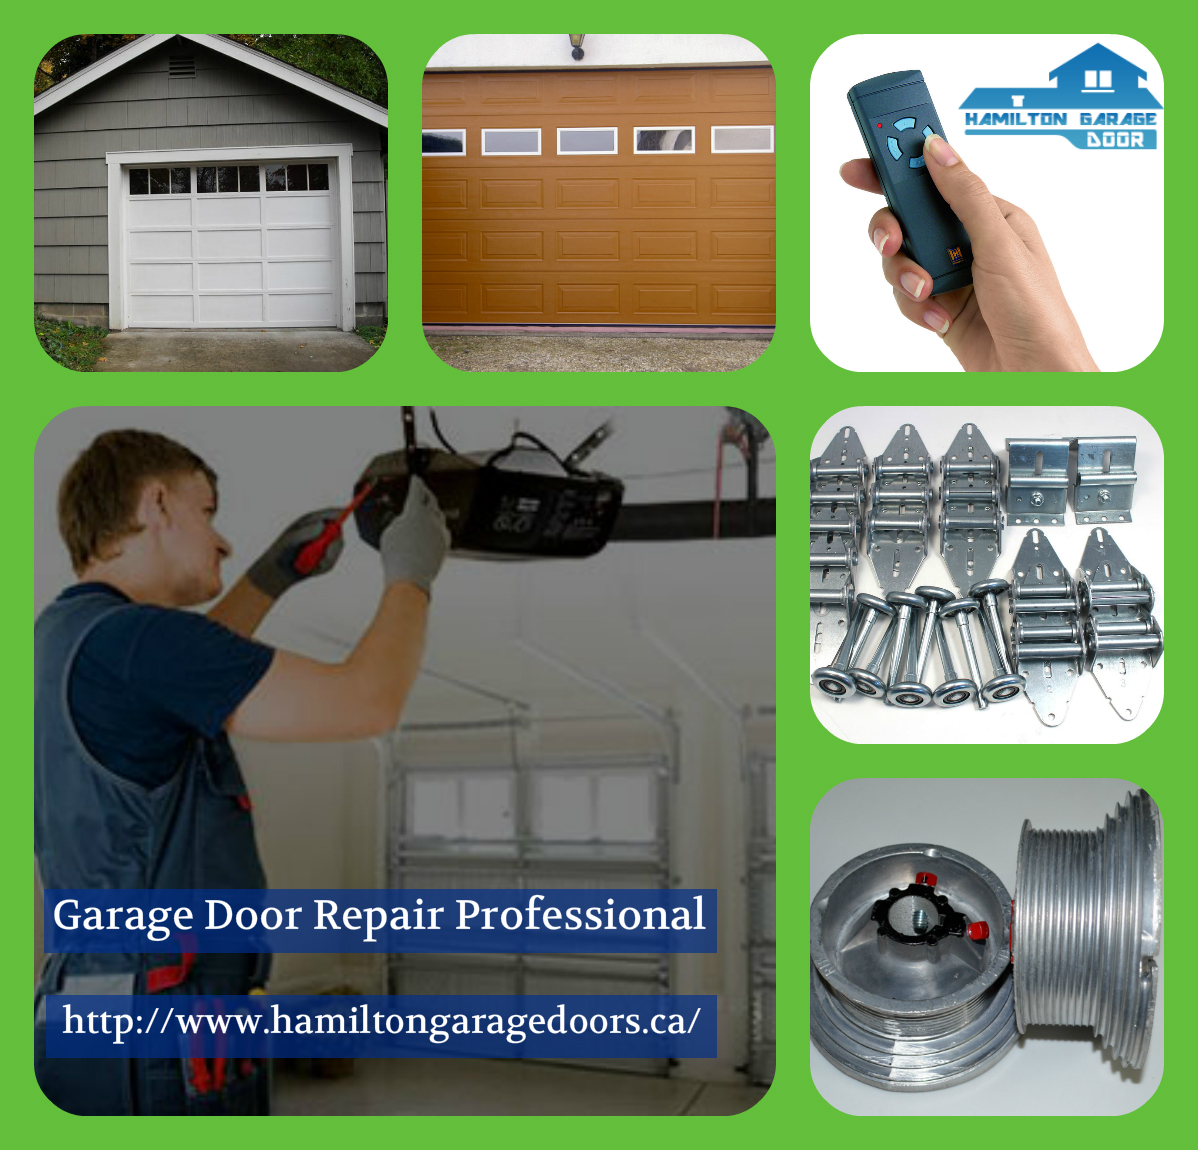 Garage door repair professional free images at for Garage service professionals